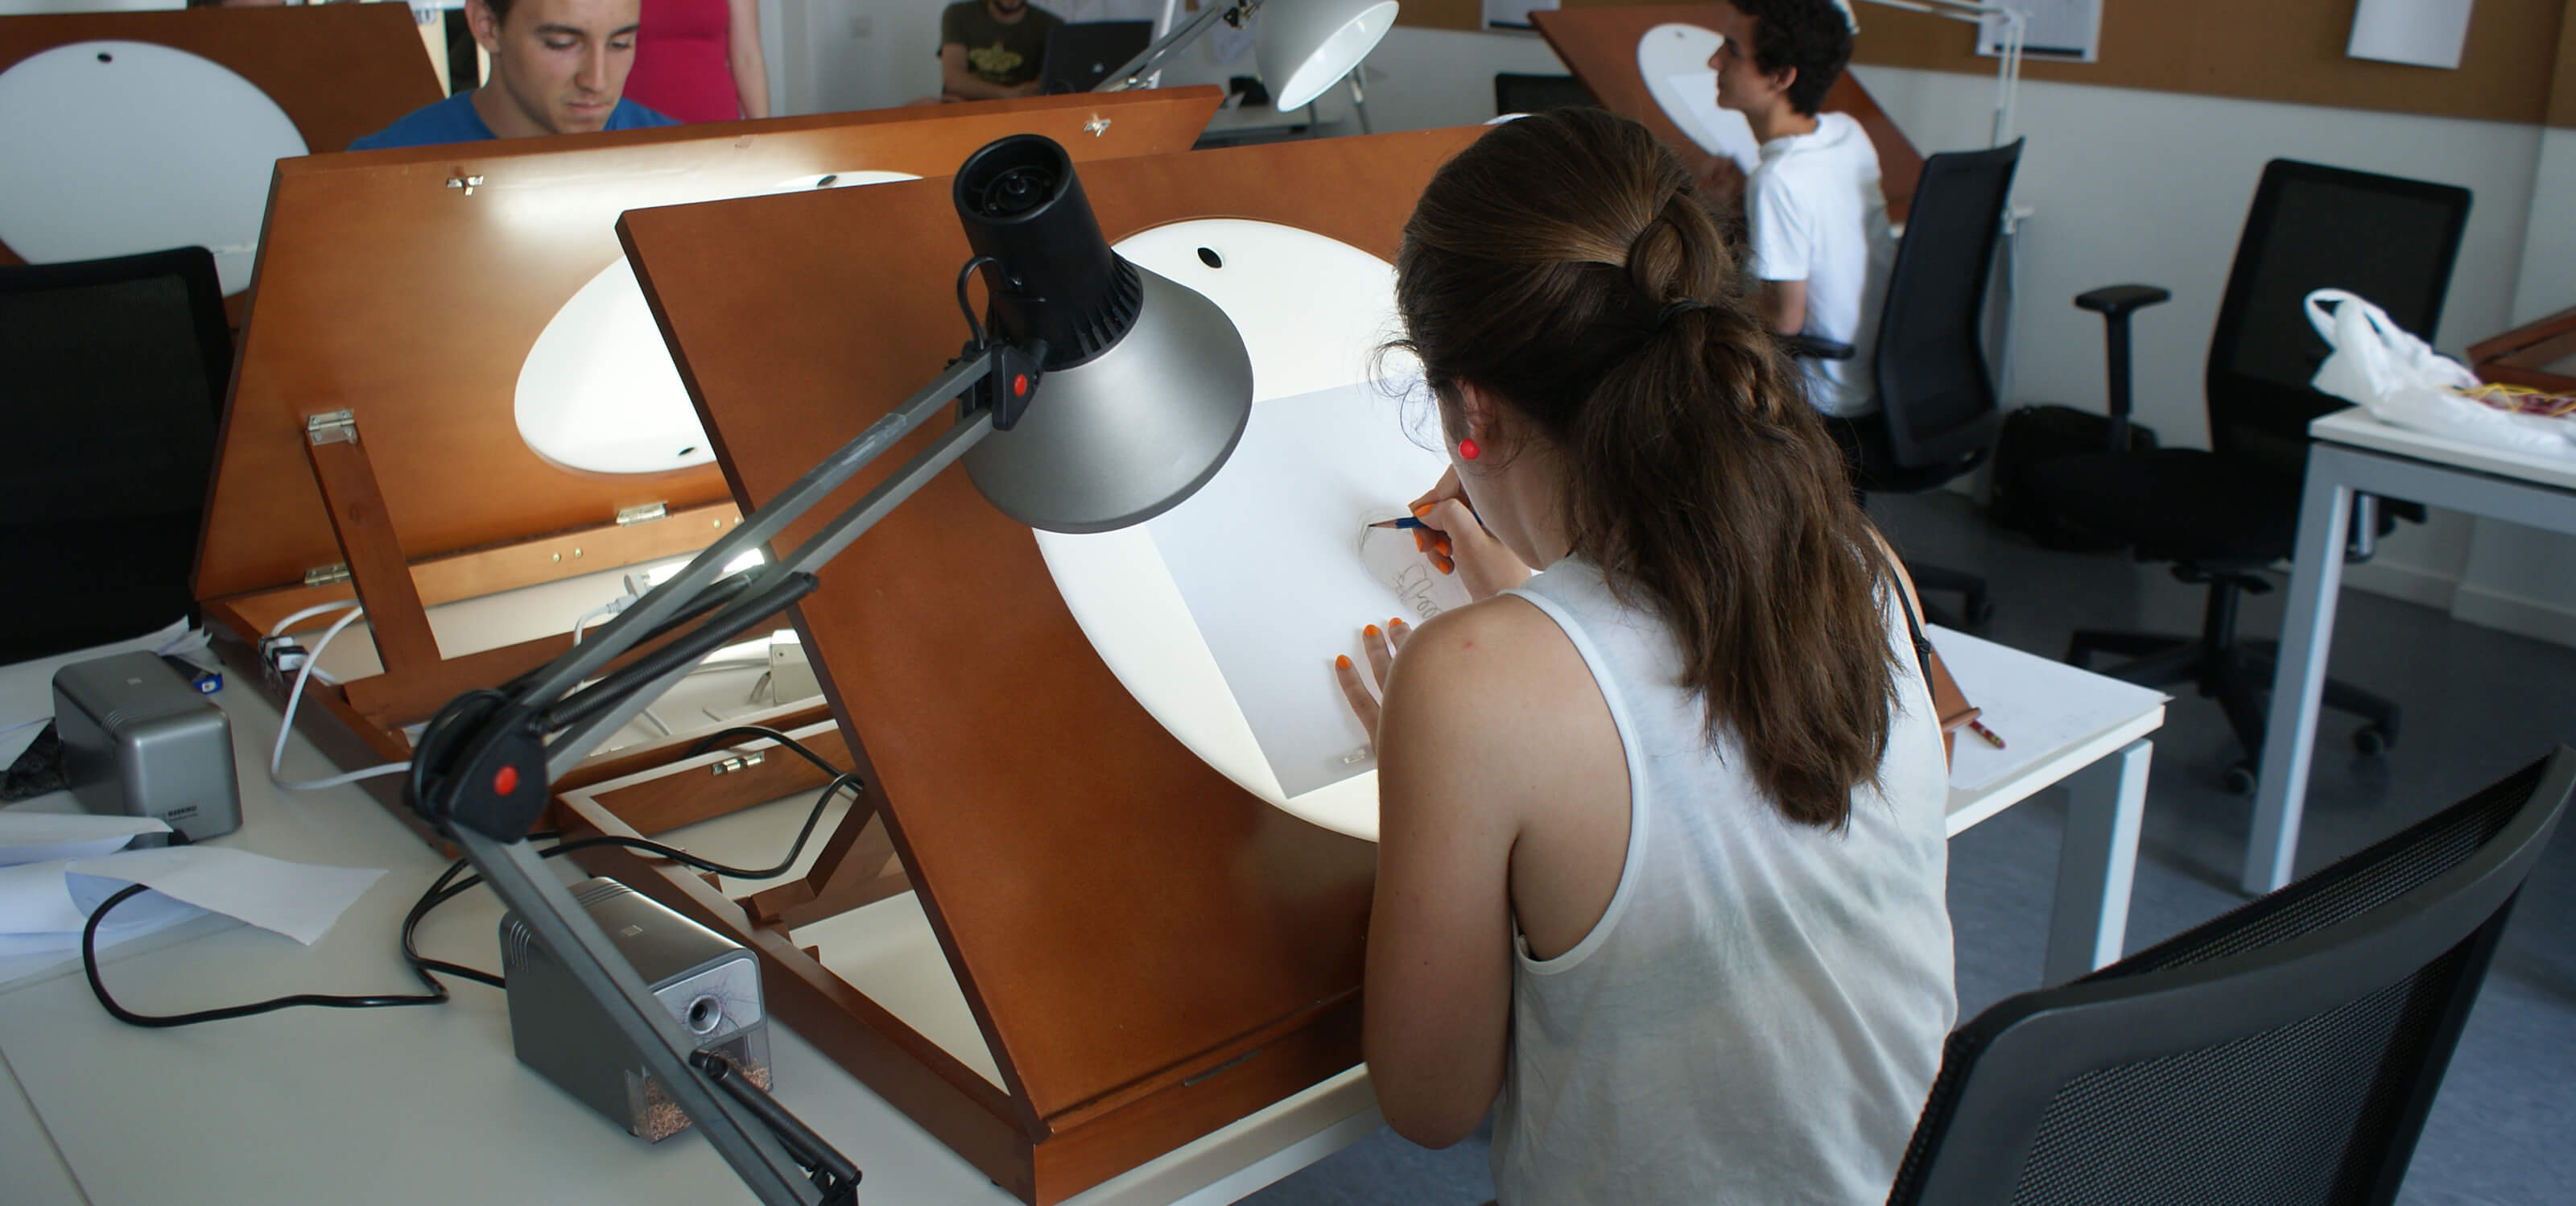 A DigiPen Europe-Bilbao student drawing on an animation light box